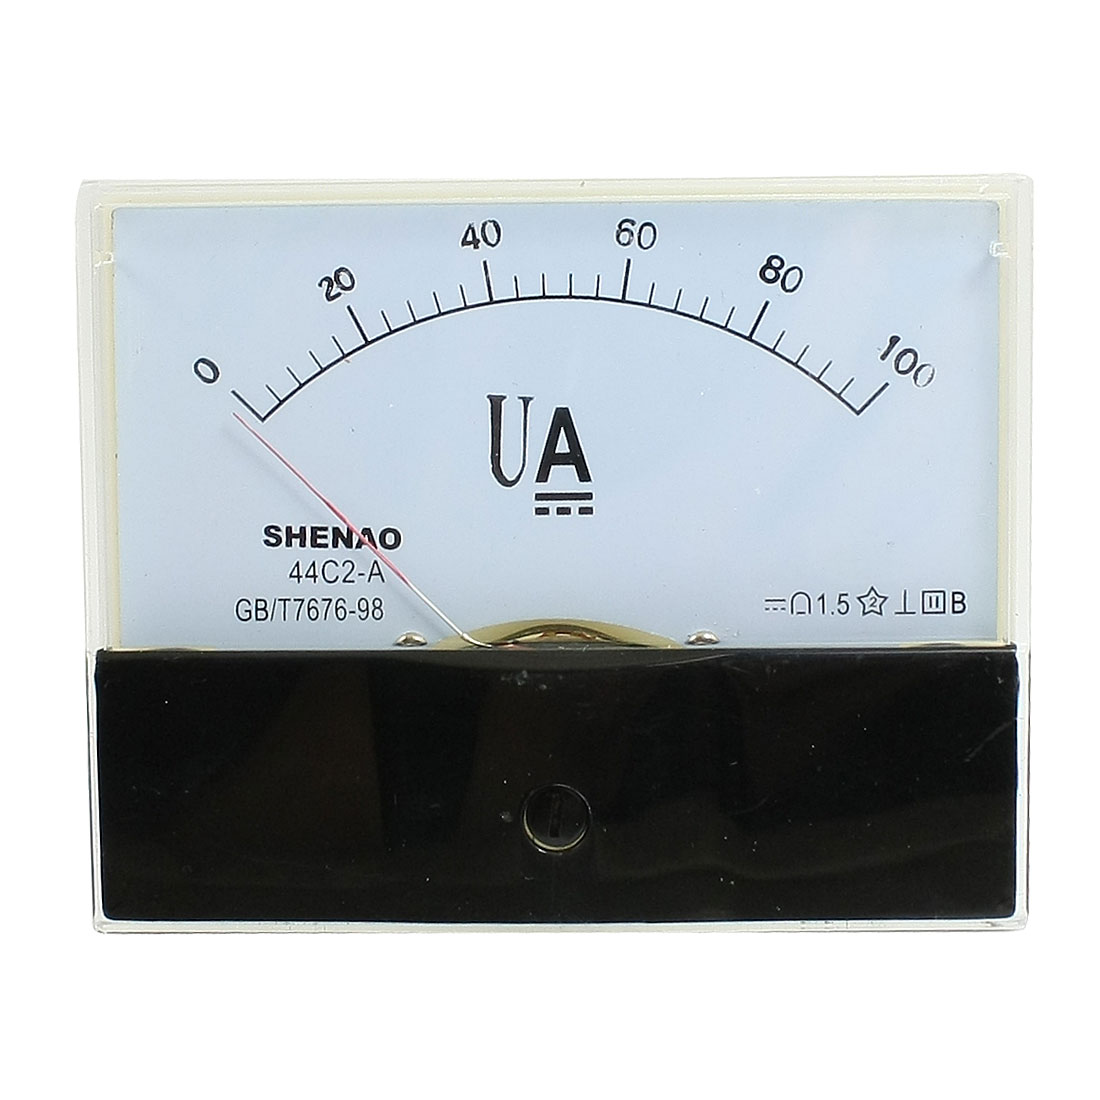 100mm x 80mm Rectangle DC 0-100uA Analog Ammeter Panel Meter 44C2-A